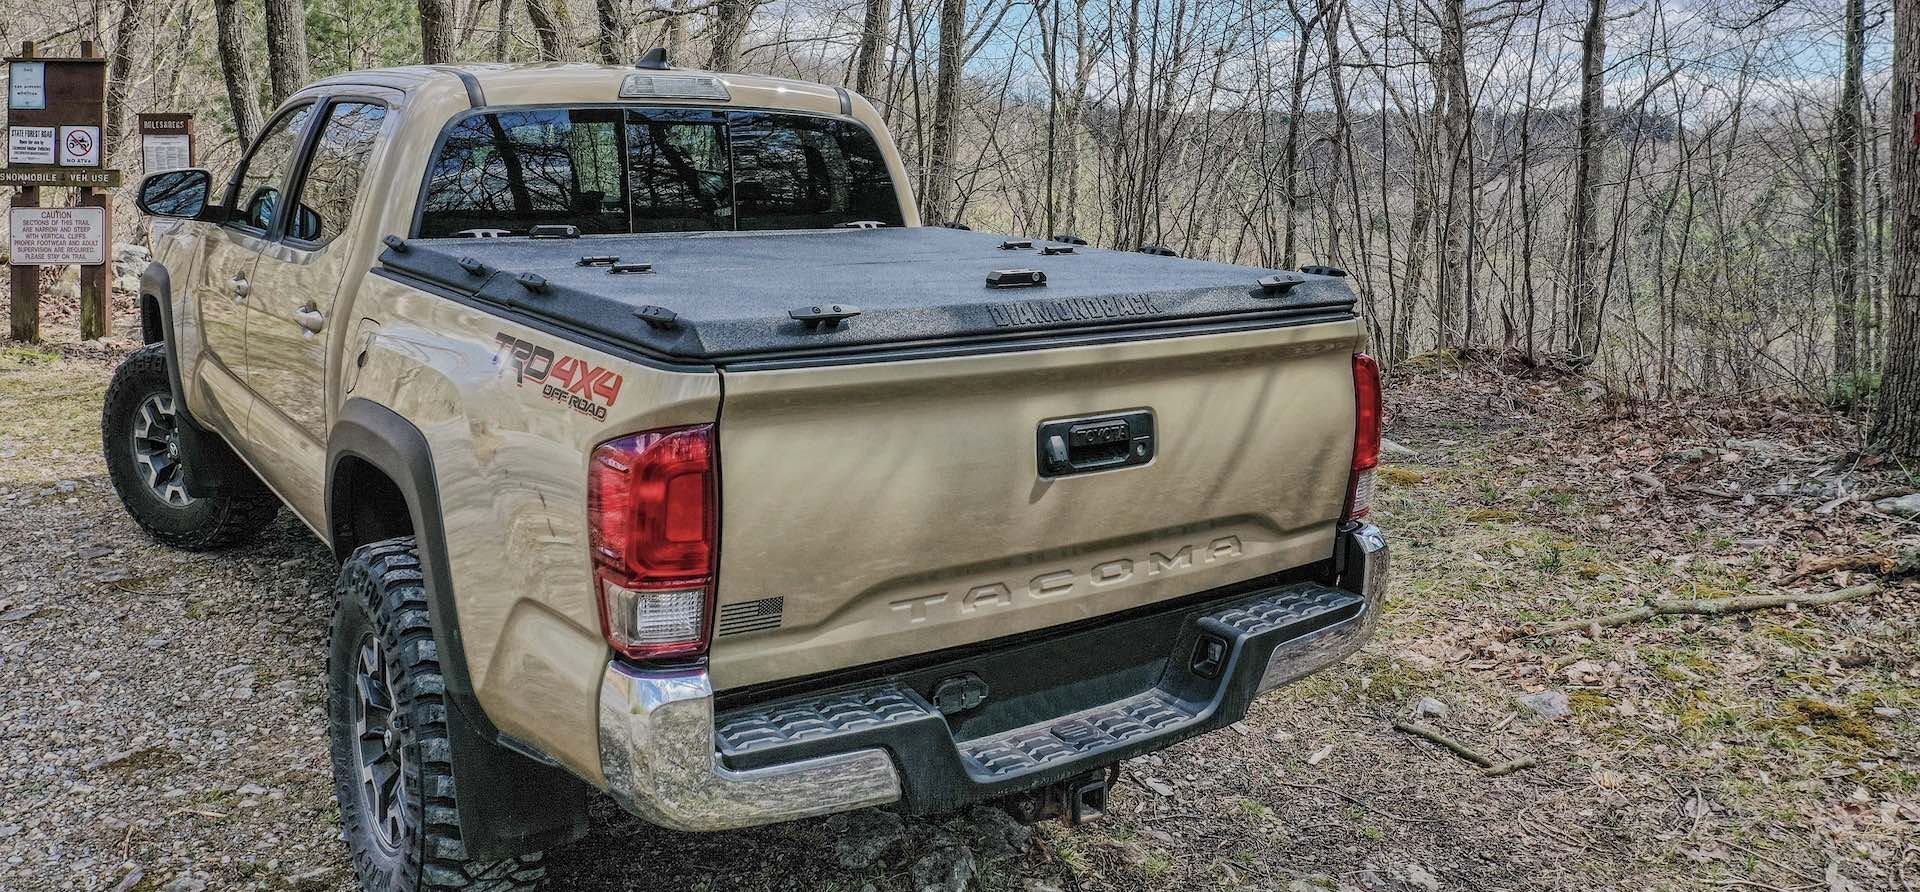 Ram pickup with DiamondBack HD diamond plate bed cover